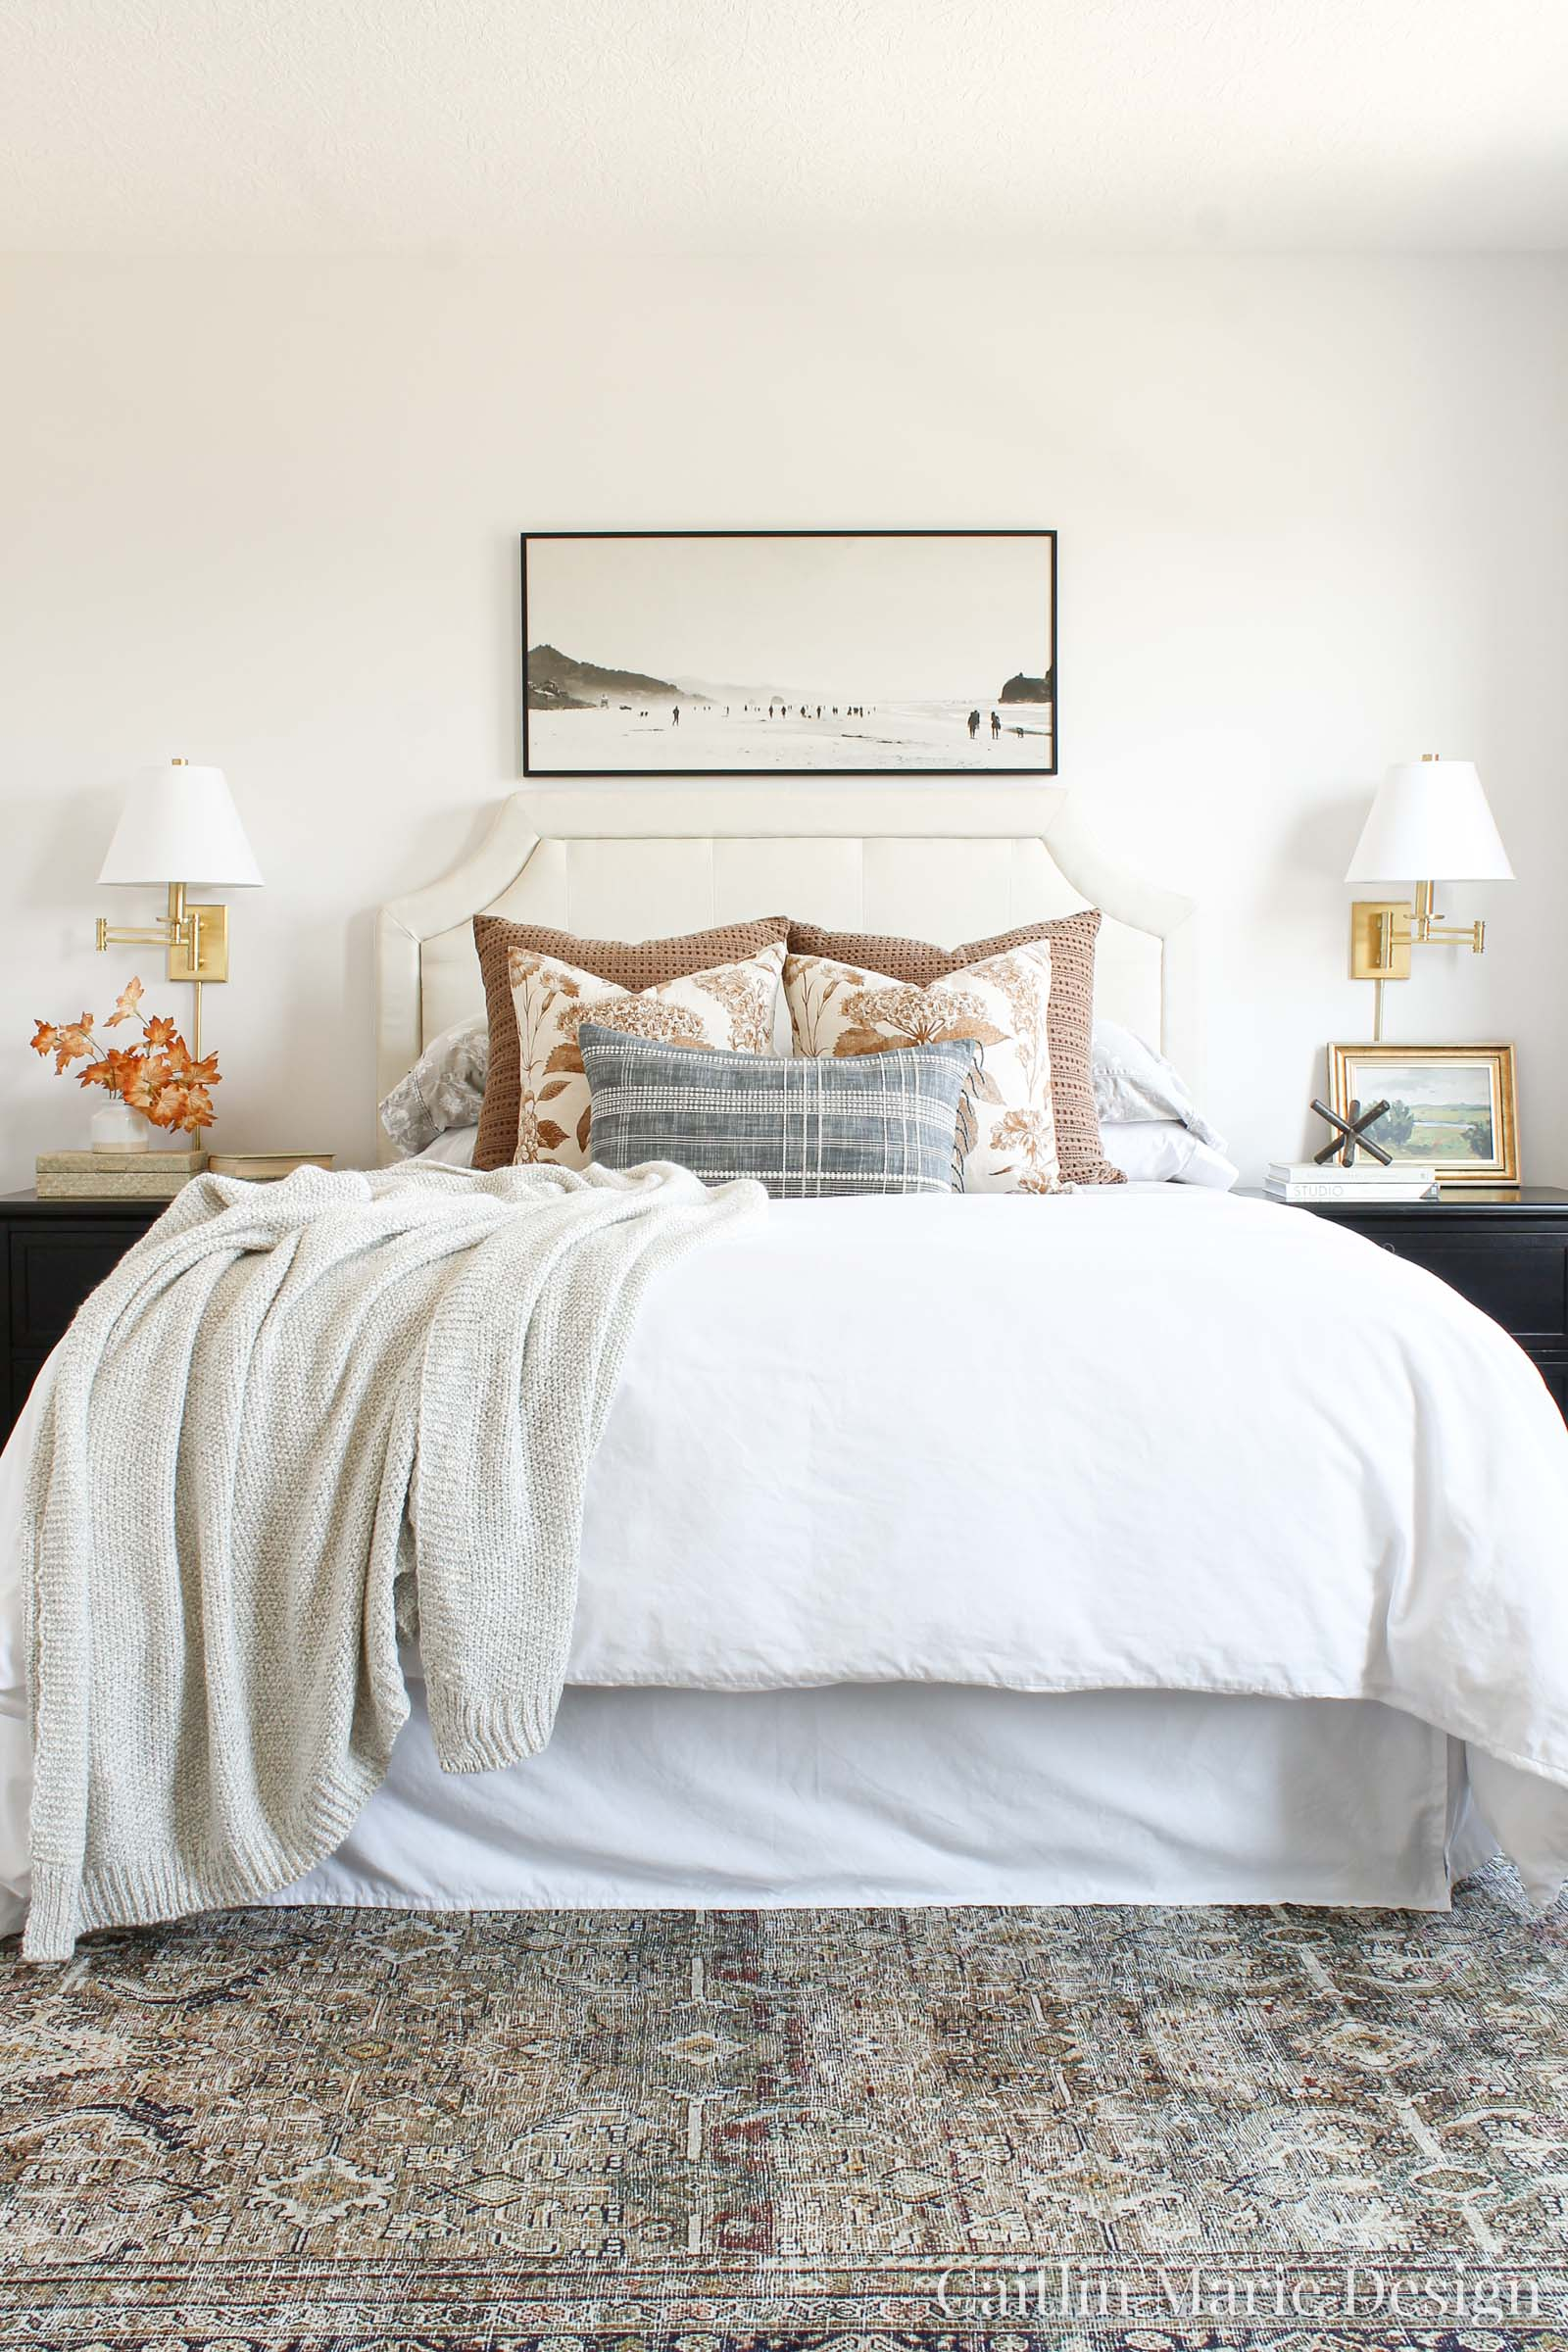 Cozy and Collected Bedroom Styling Tips for Fall | modern traditional decor, vintage style, bedroom wall sconce, art over the bed, layered bedding, sweater throw blanket, Loloi Layla rug, Threshold with Studio McGee